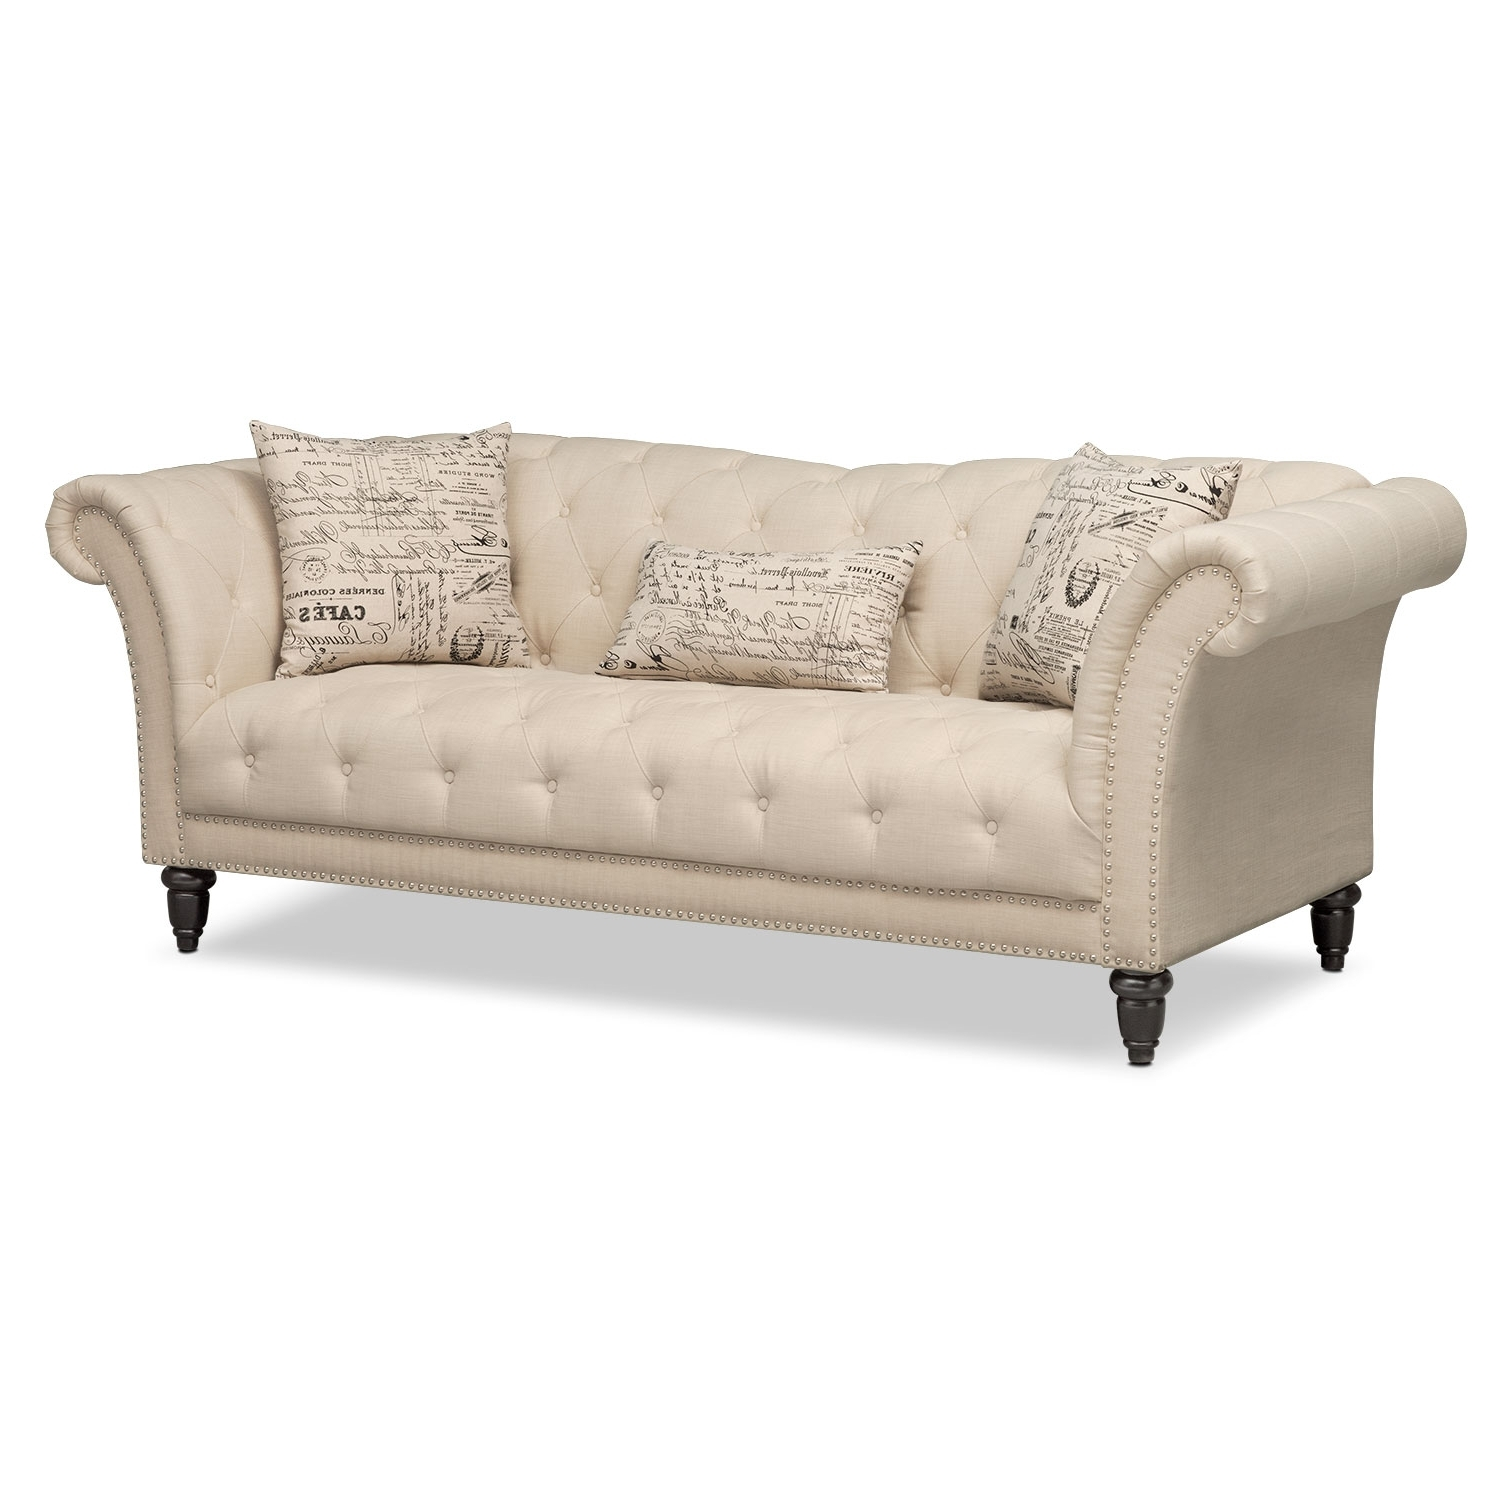 Value City Regarding Value City Sofas (View 2 of 20)